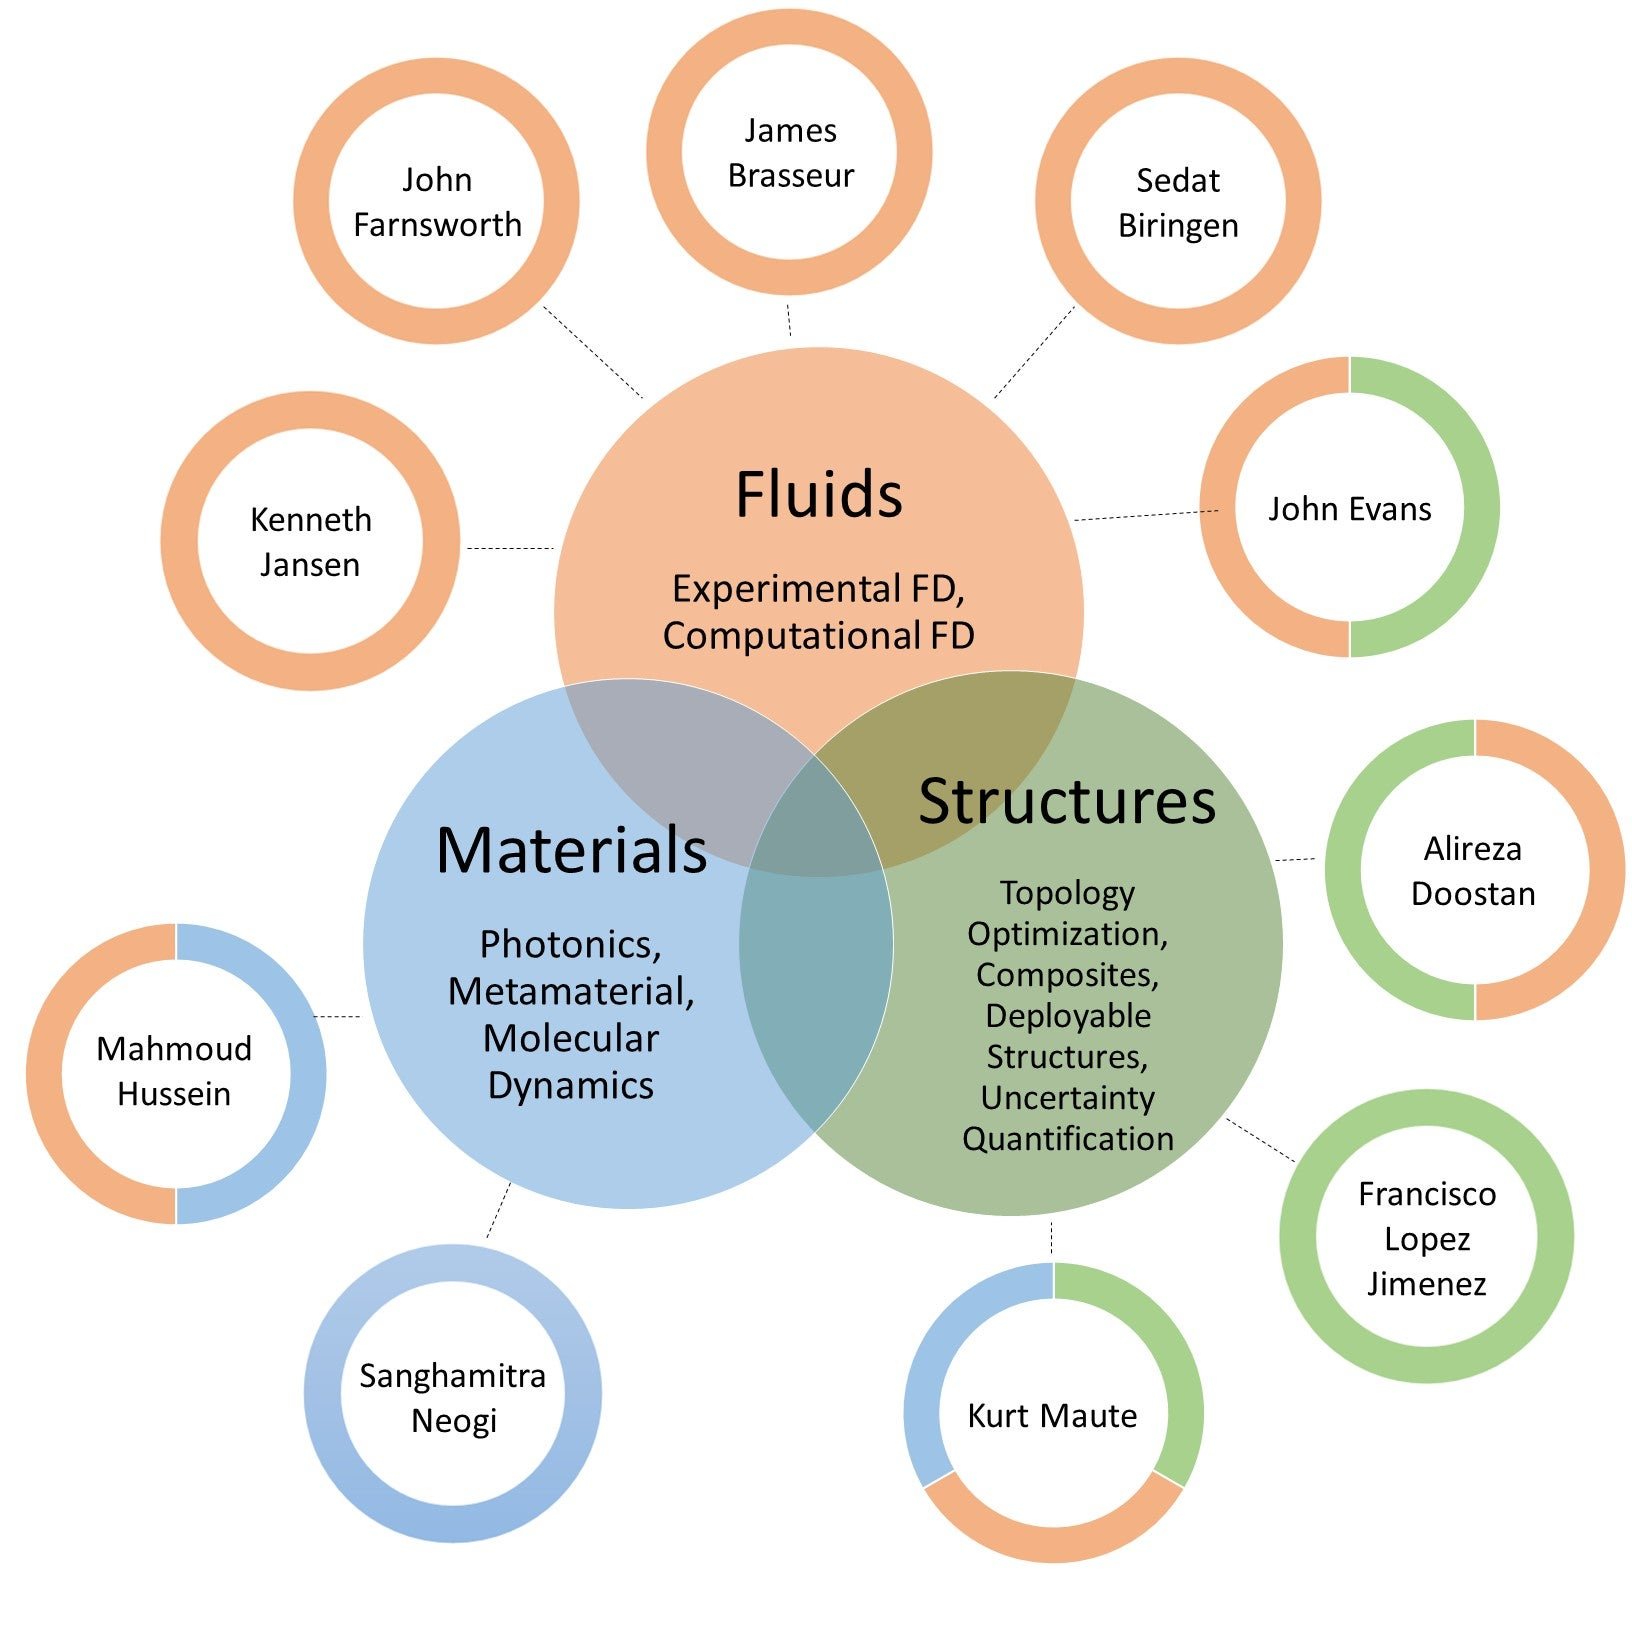 The organizational structure of CAS including fluids, materials and structures as its three initial branches